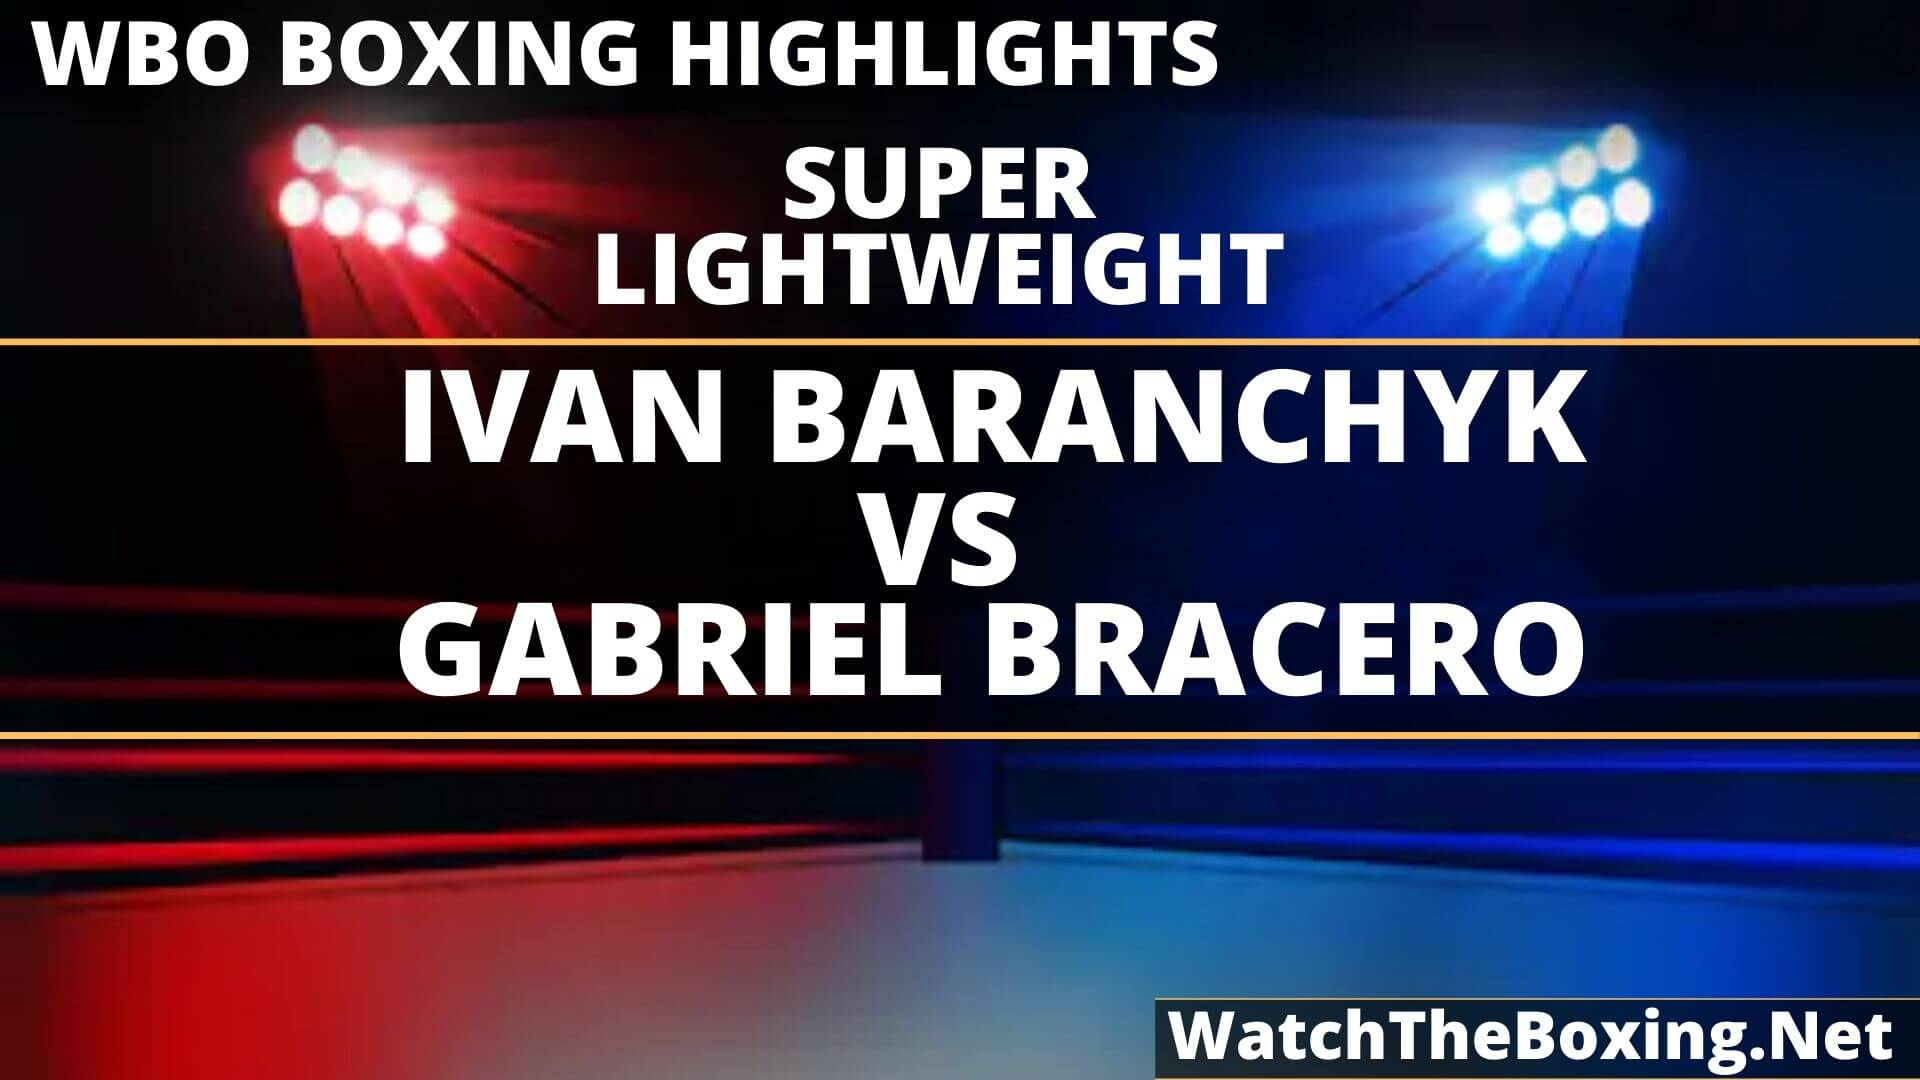 Ivan Baranchyk Vs Gabriel Bracero Highlights 2019